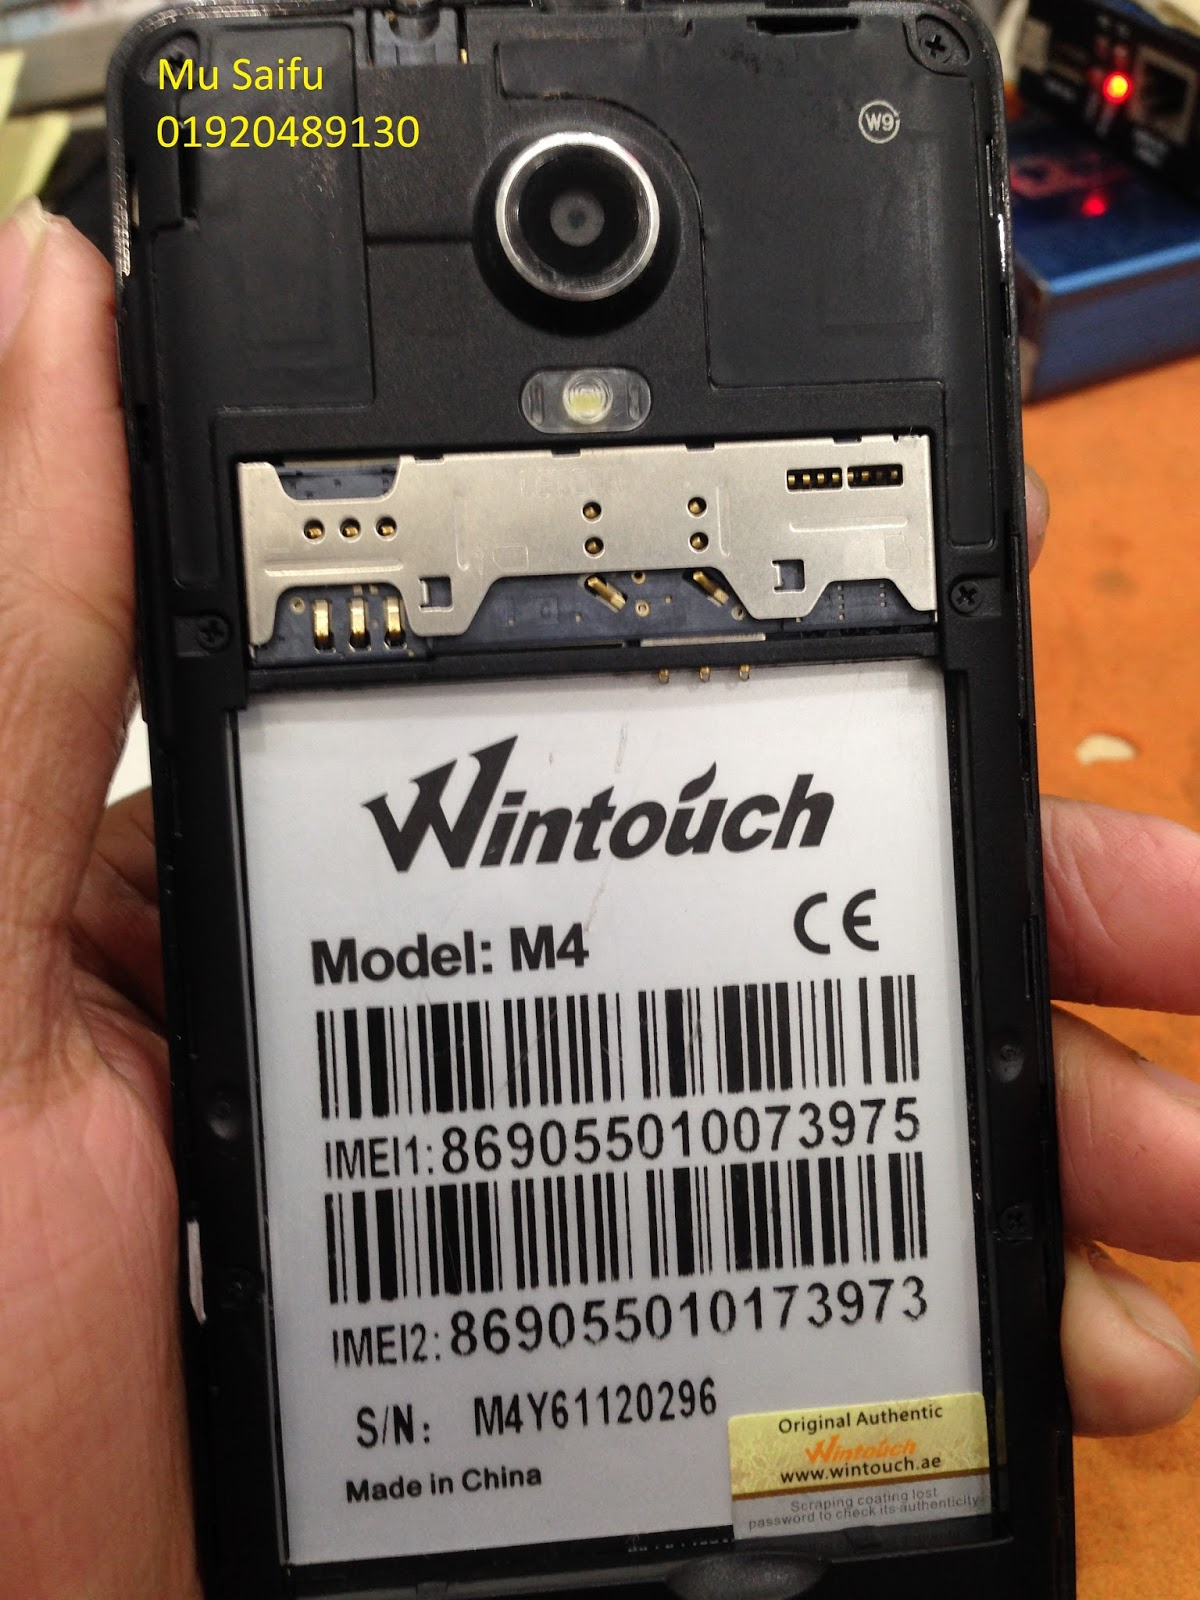 Wintouch M4 Flash File Firmware | SAMSUNG FRP LOCK & SAMSUNG